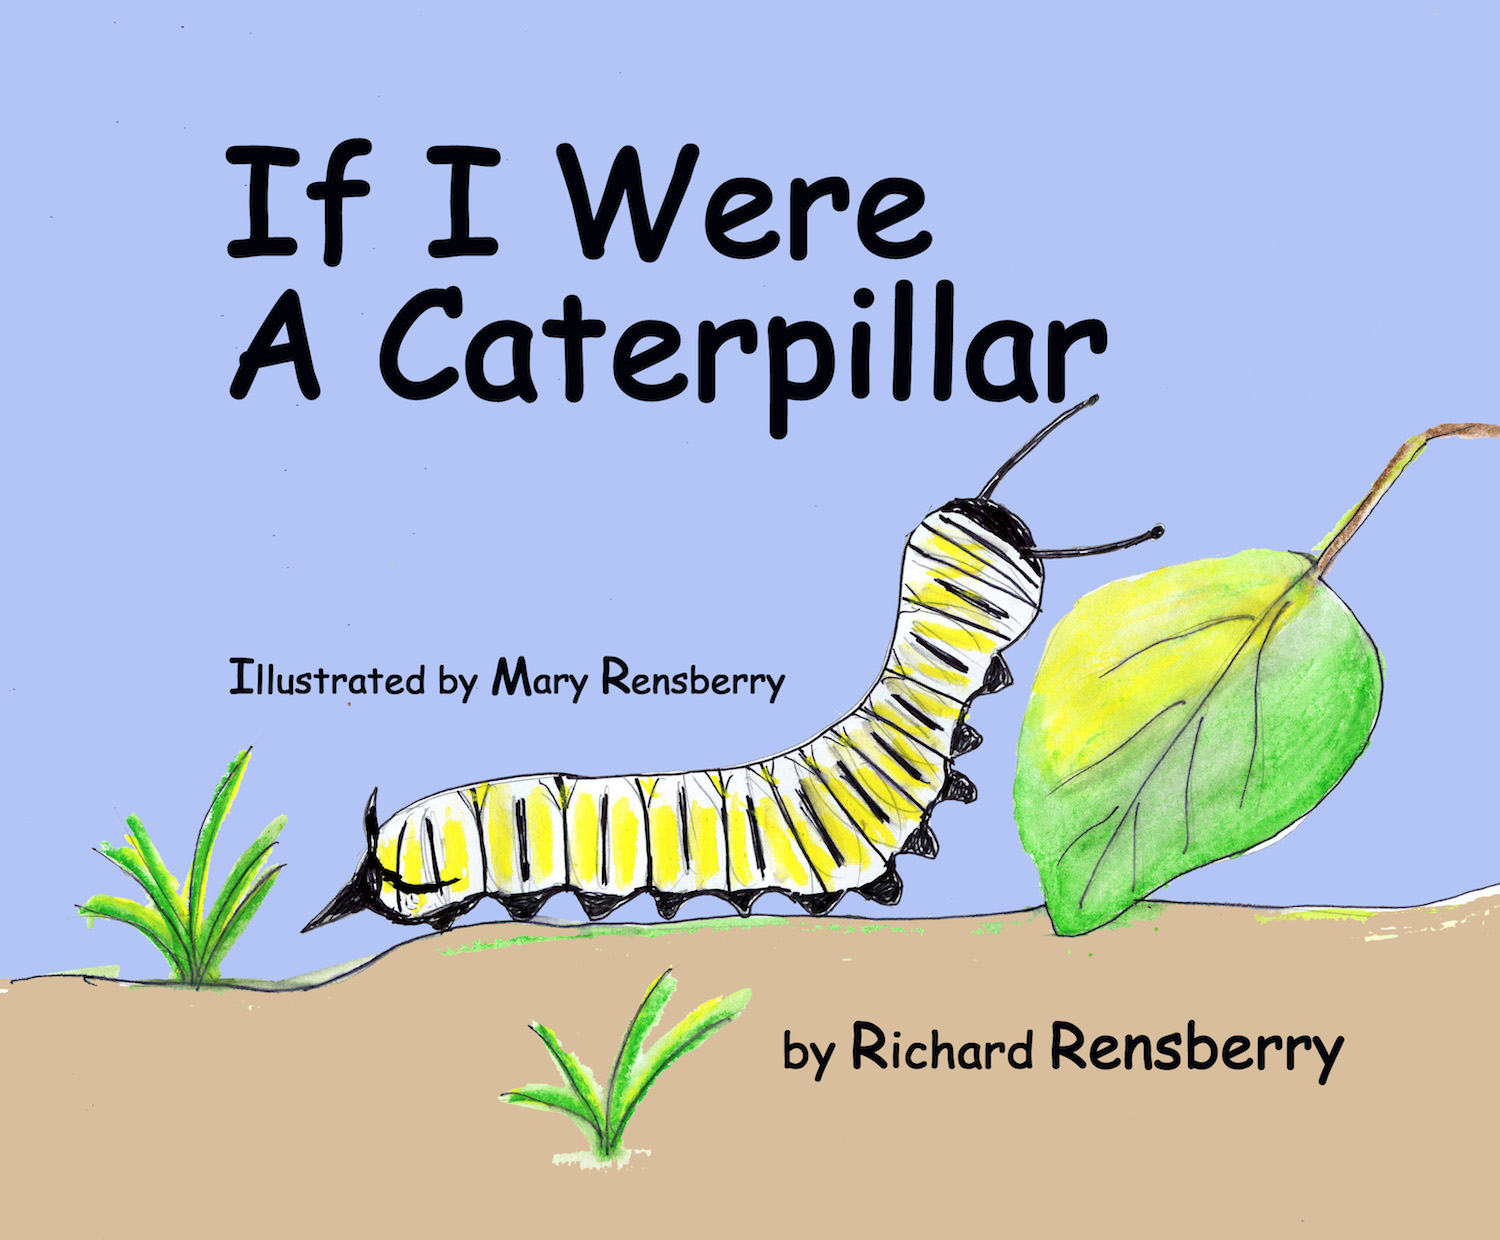 Caterpillar dreams book cover for kid's book If I Were A Caterpillar.  Written, illustrated and published by Books Make Booms authors Richard and Mary Rensberry.